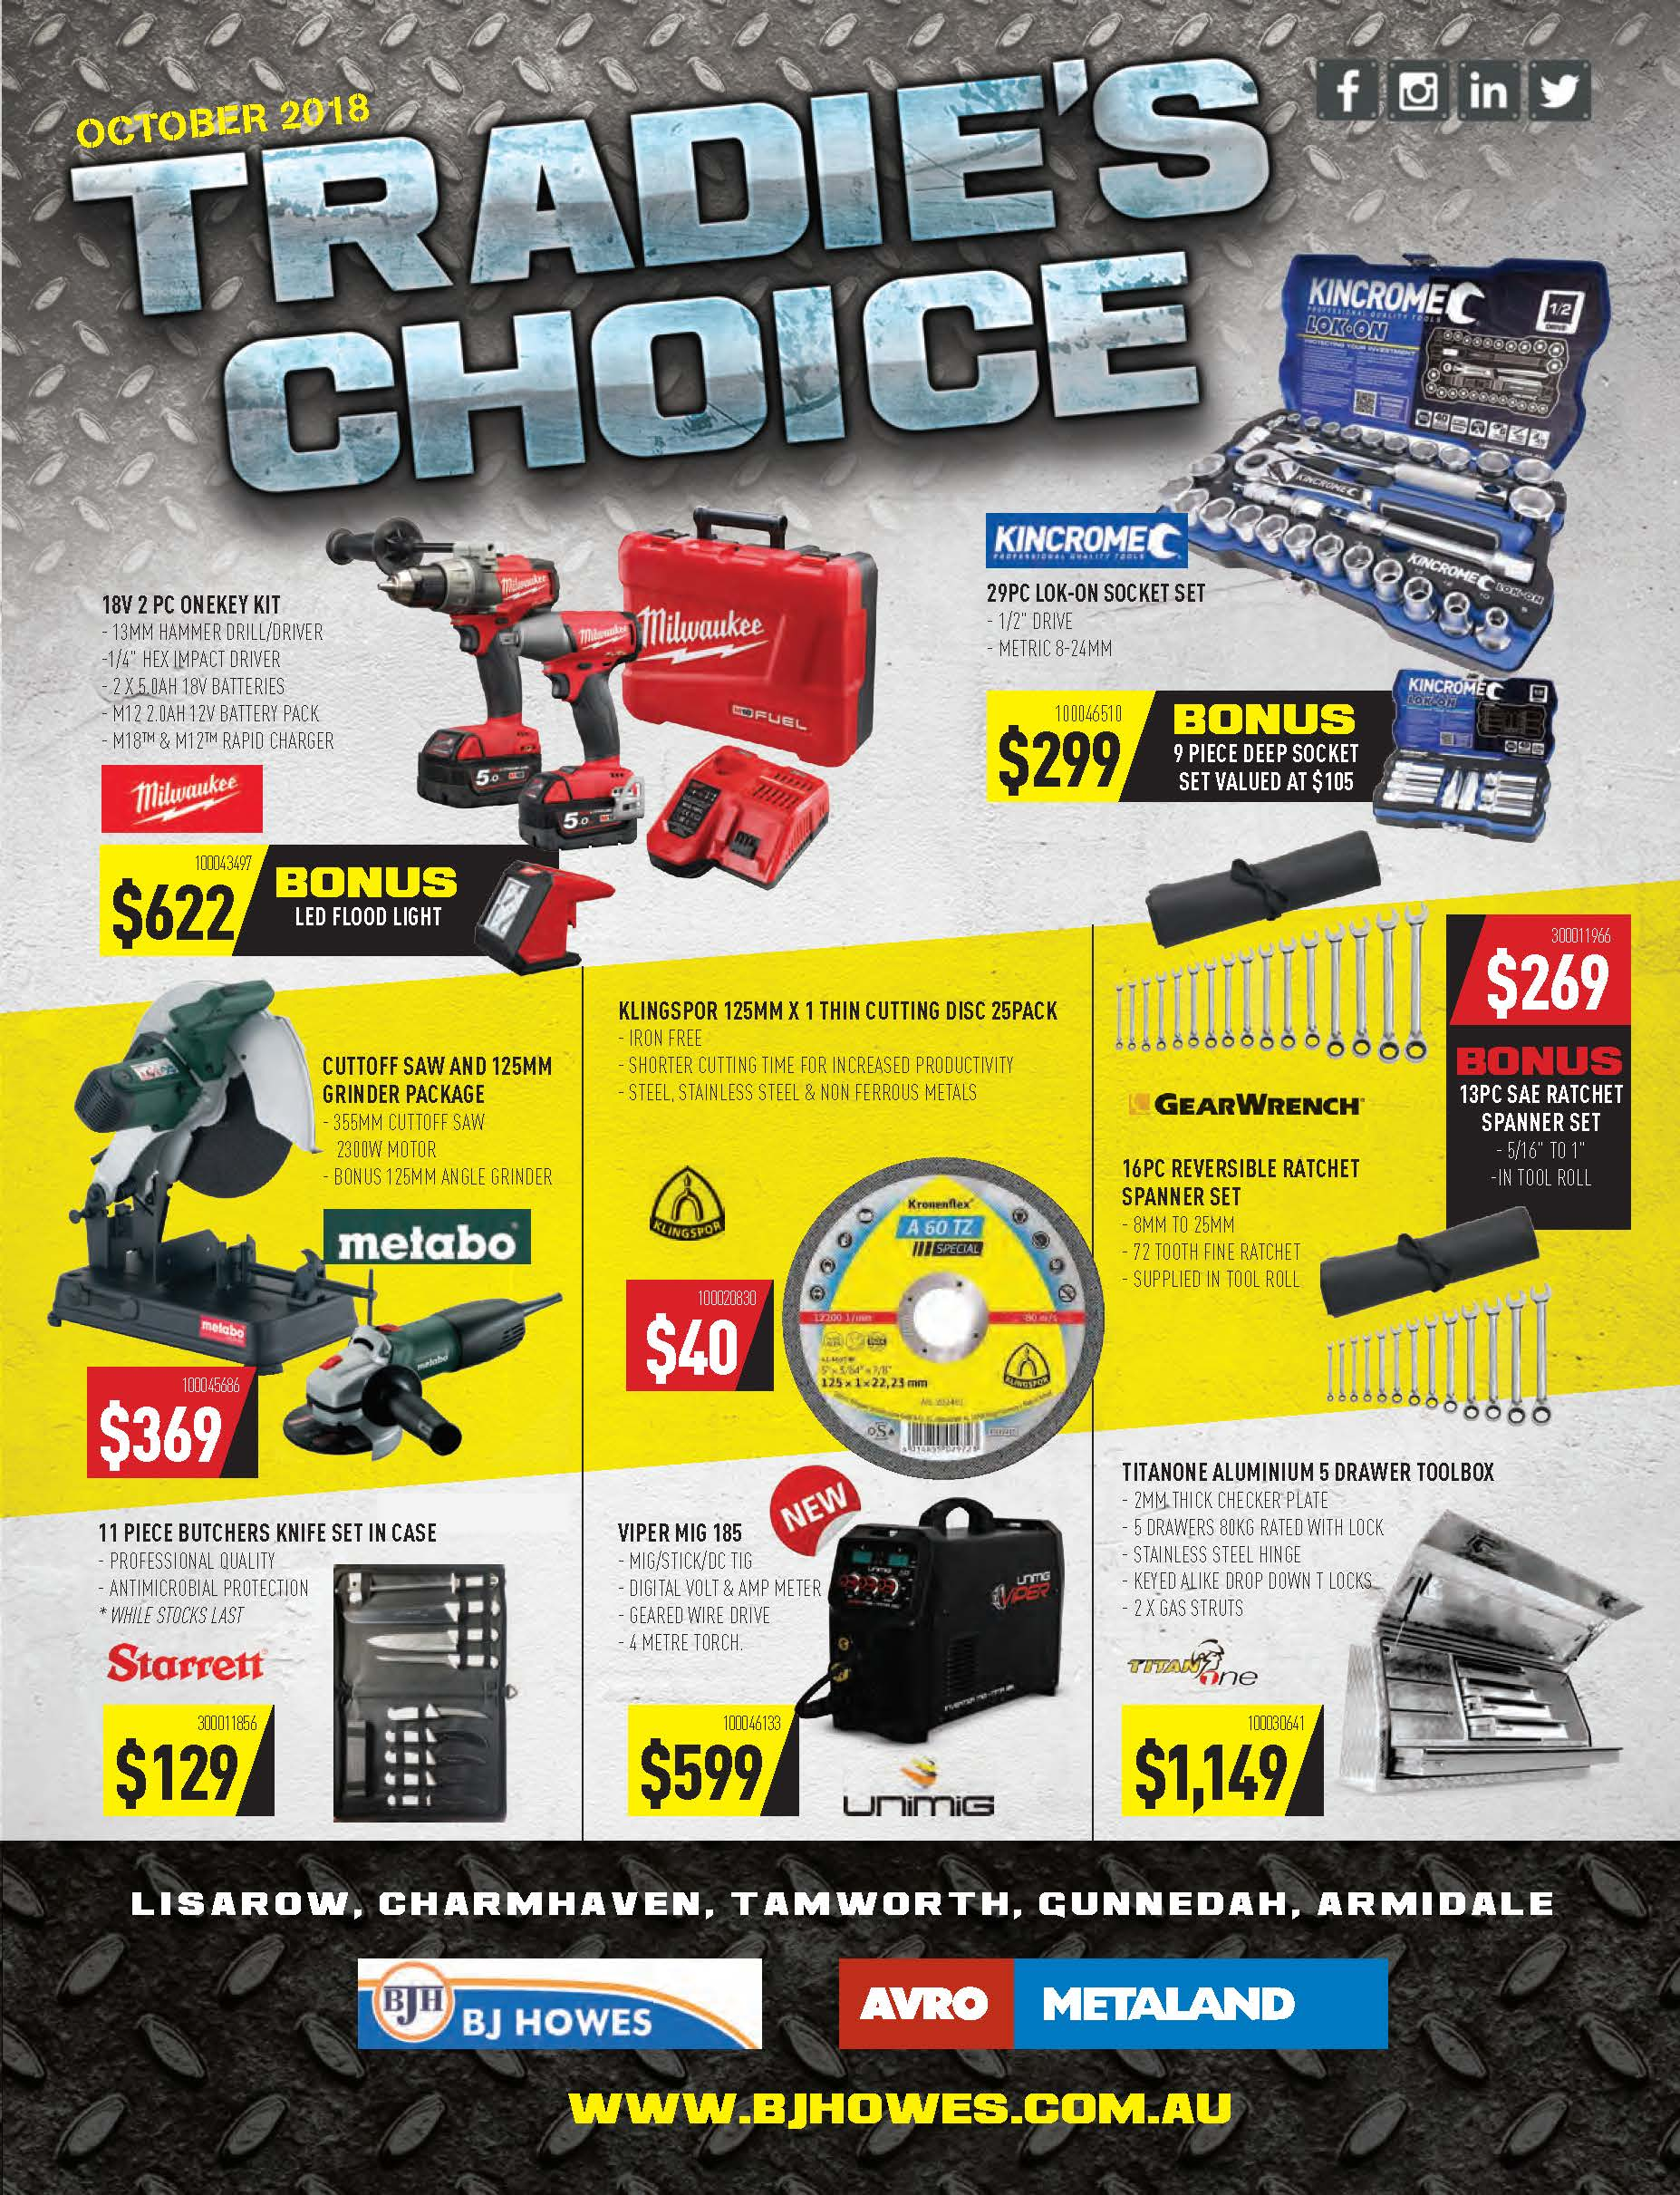 Tradie's Choice Catalogue Oct 2018